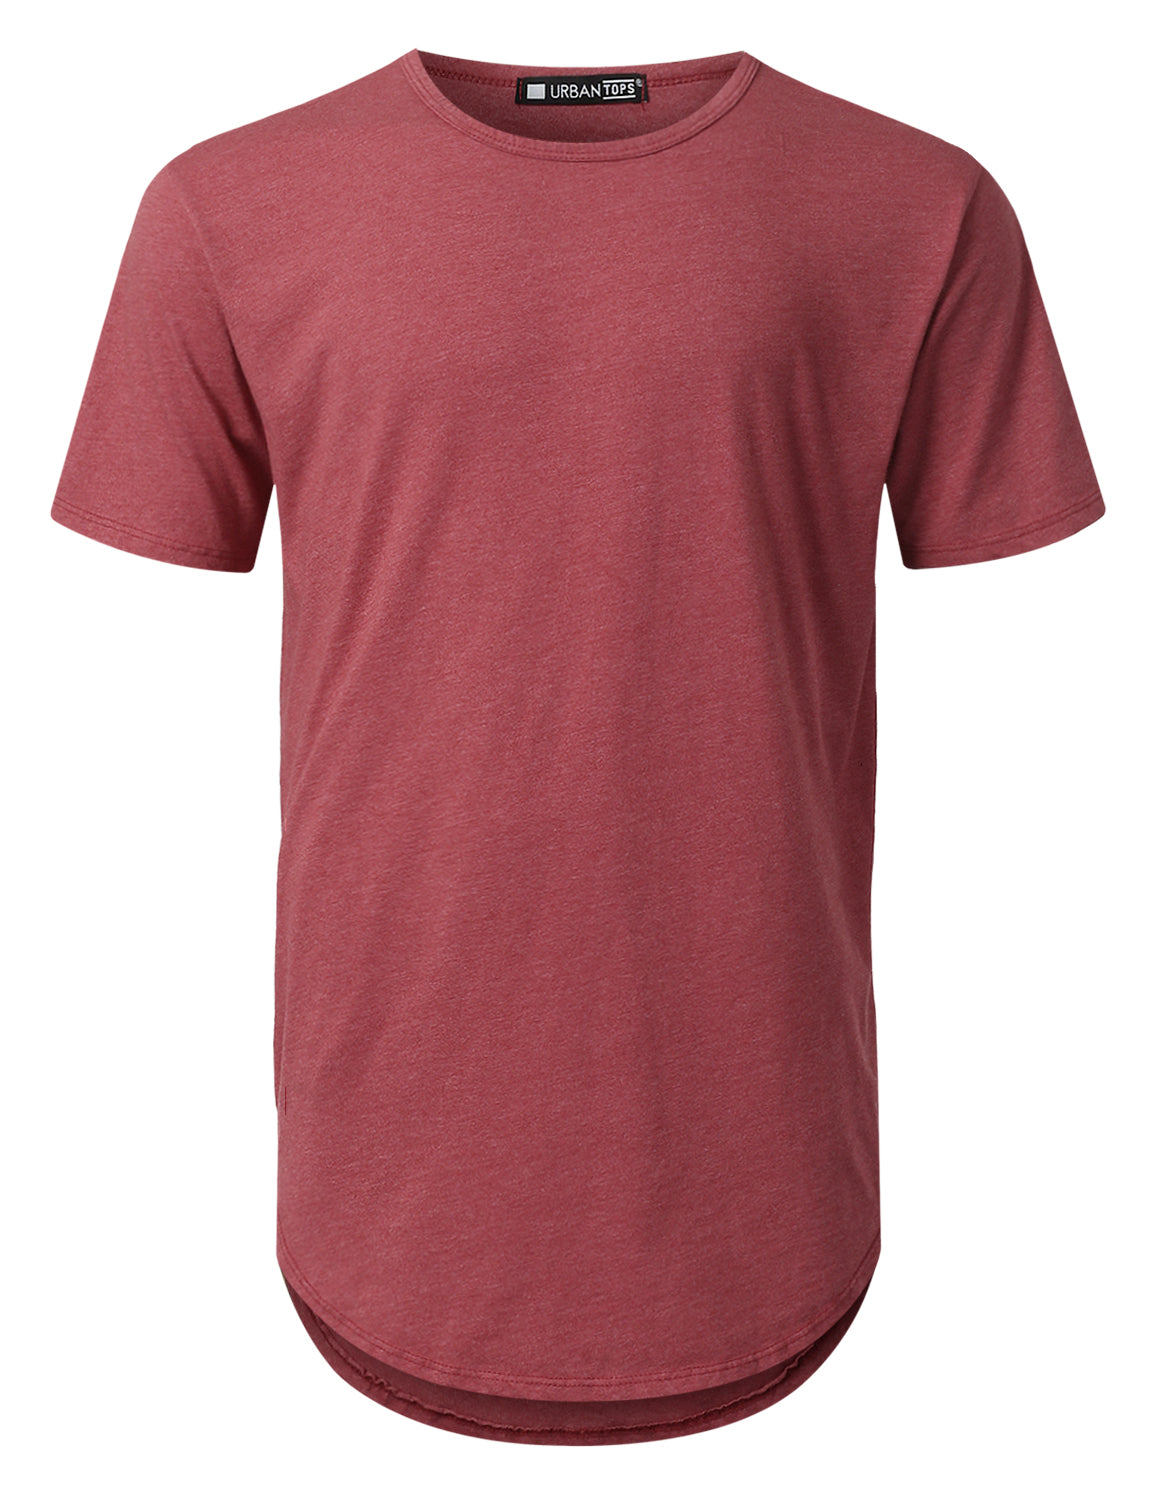 BURGUNDY Basic Poly Cotton Longline T-shirt - URBANCREWS